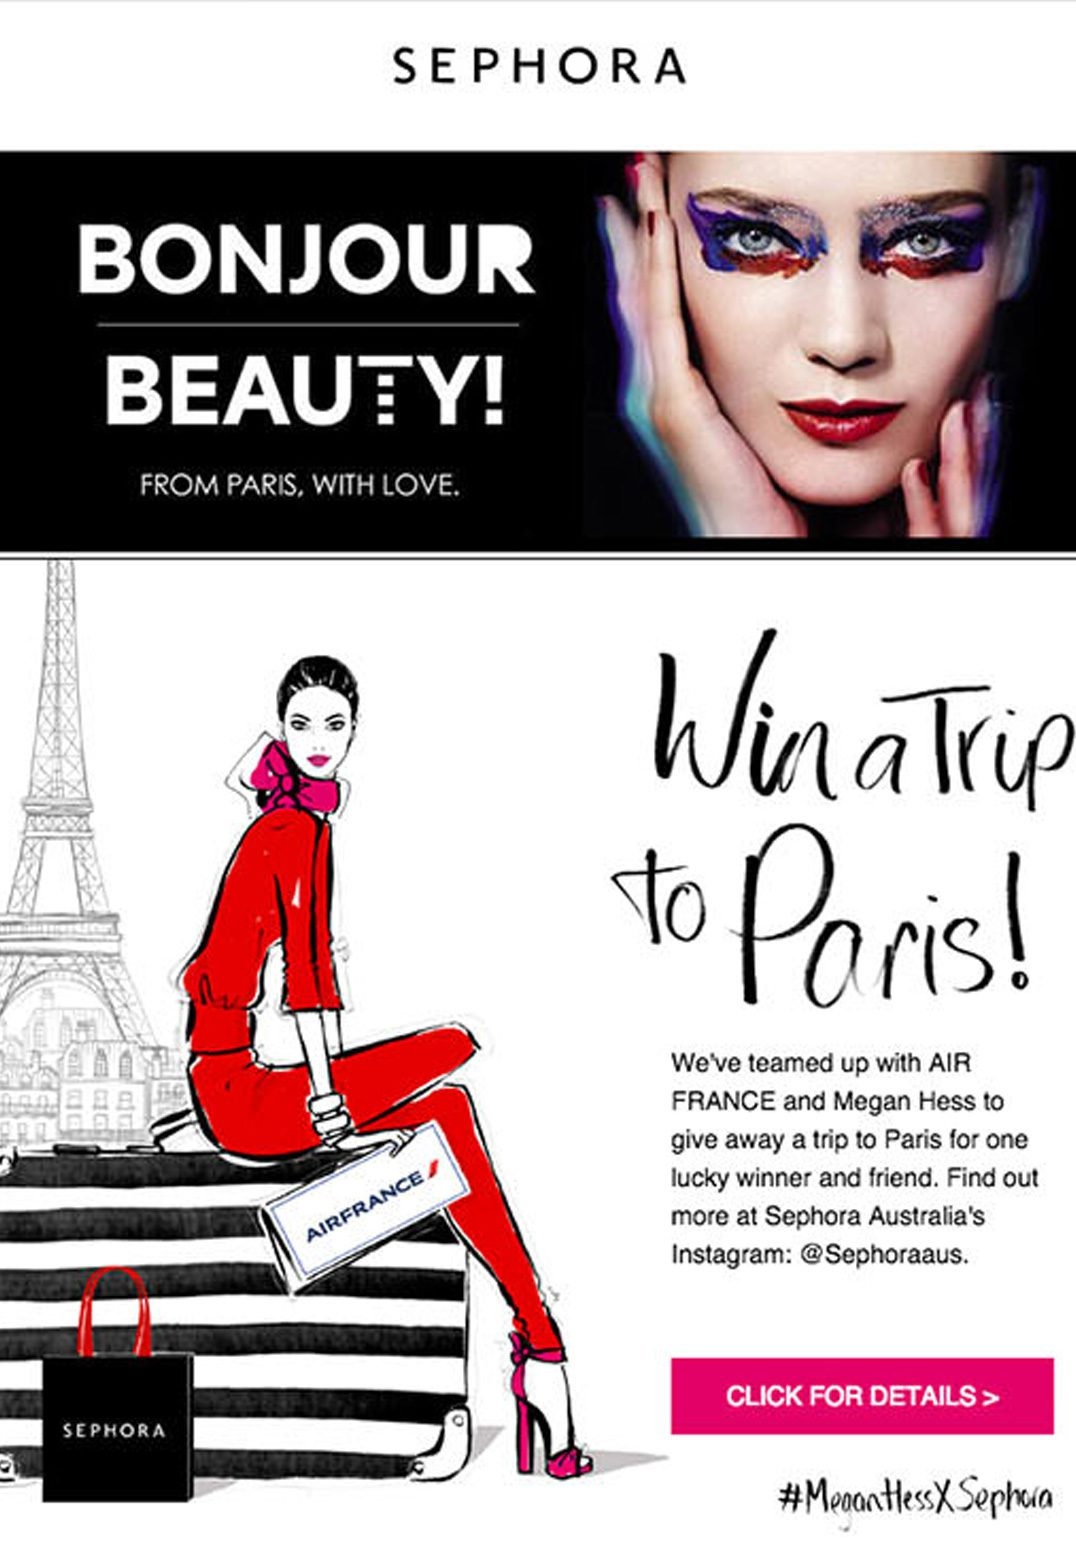 Check out how Sephora used an effective email to raise awareness of its Instagram contest: